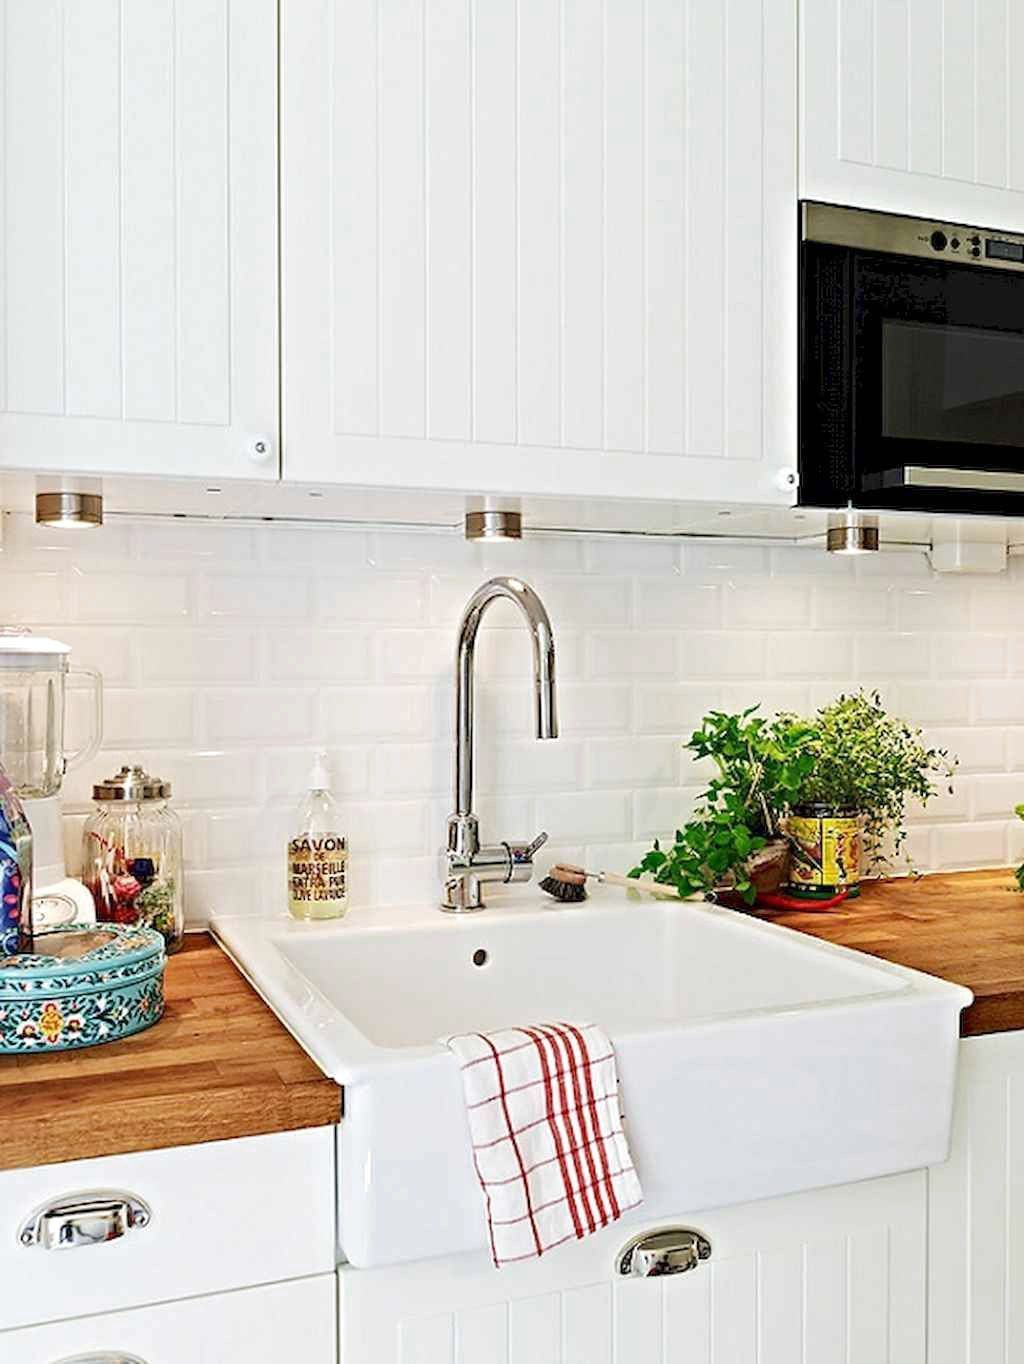 Favorite Colorful Kitchen Decor Ideas And Remodel For Summer Project Frugal Living Farmhouse Sink Kitchen Ikea Kitchen Kitchen Inspirations